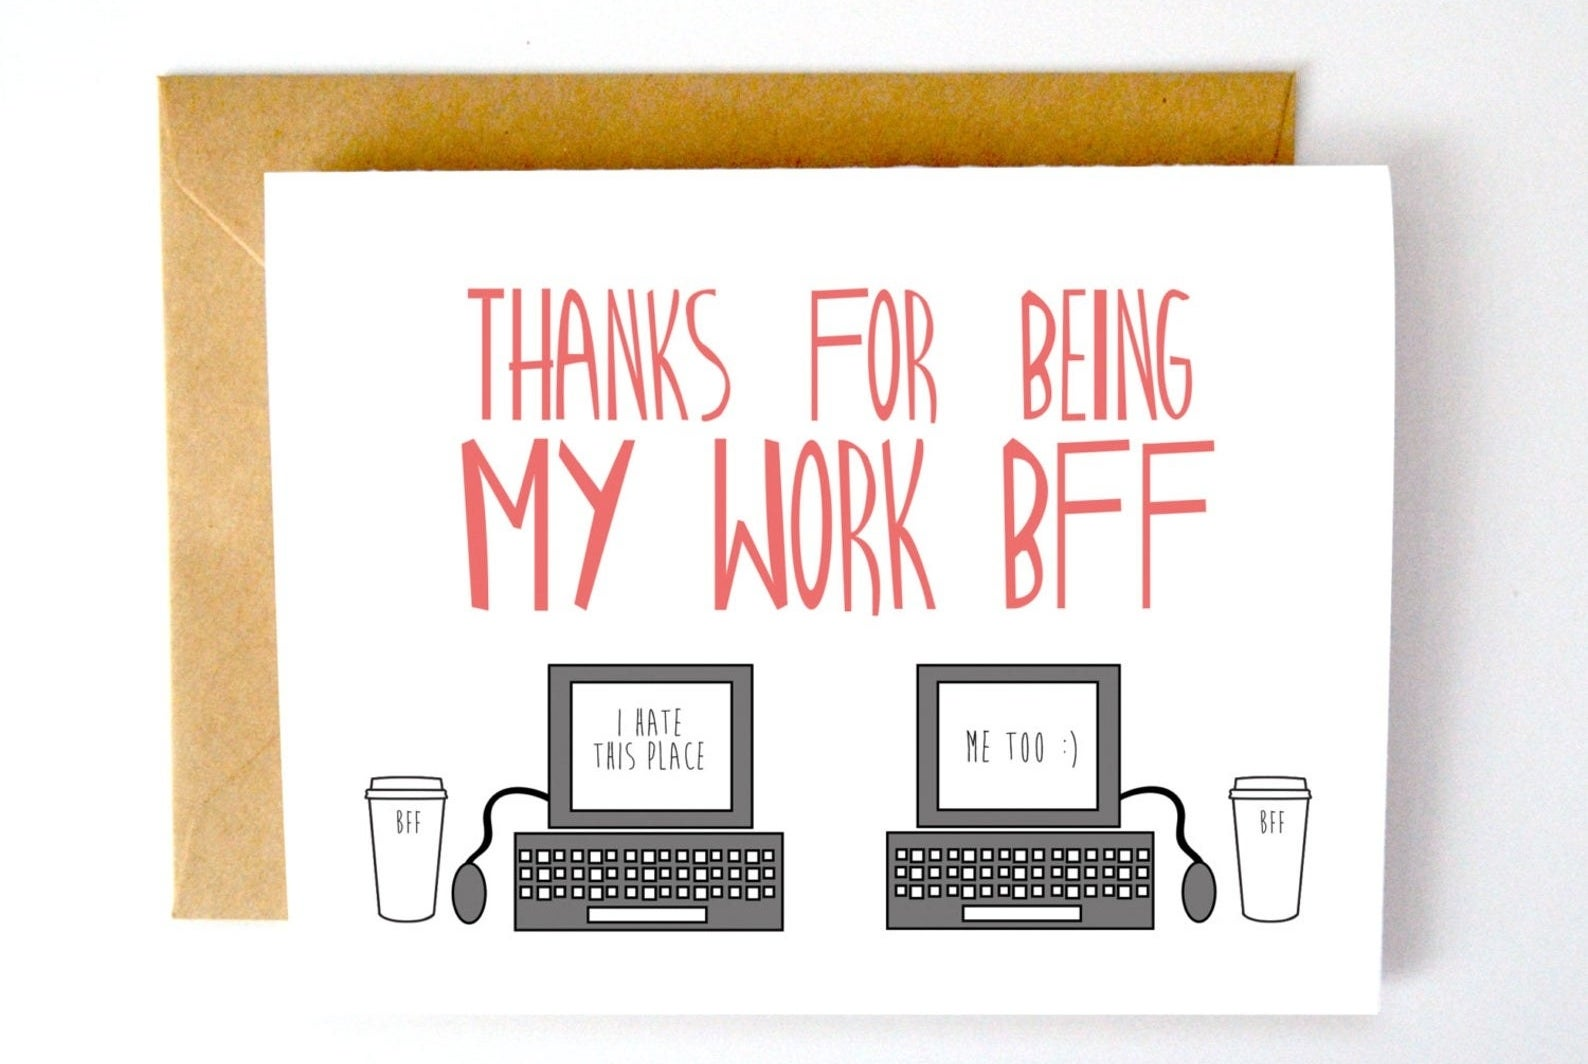 """A white card with """"Thanks for being my work BFF"""" in red type, with two drawings of computers—one says """"I hate this place,"""" the other says """"Me too :)"""""""